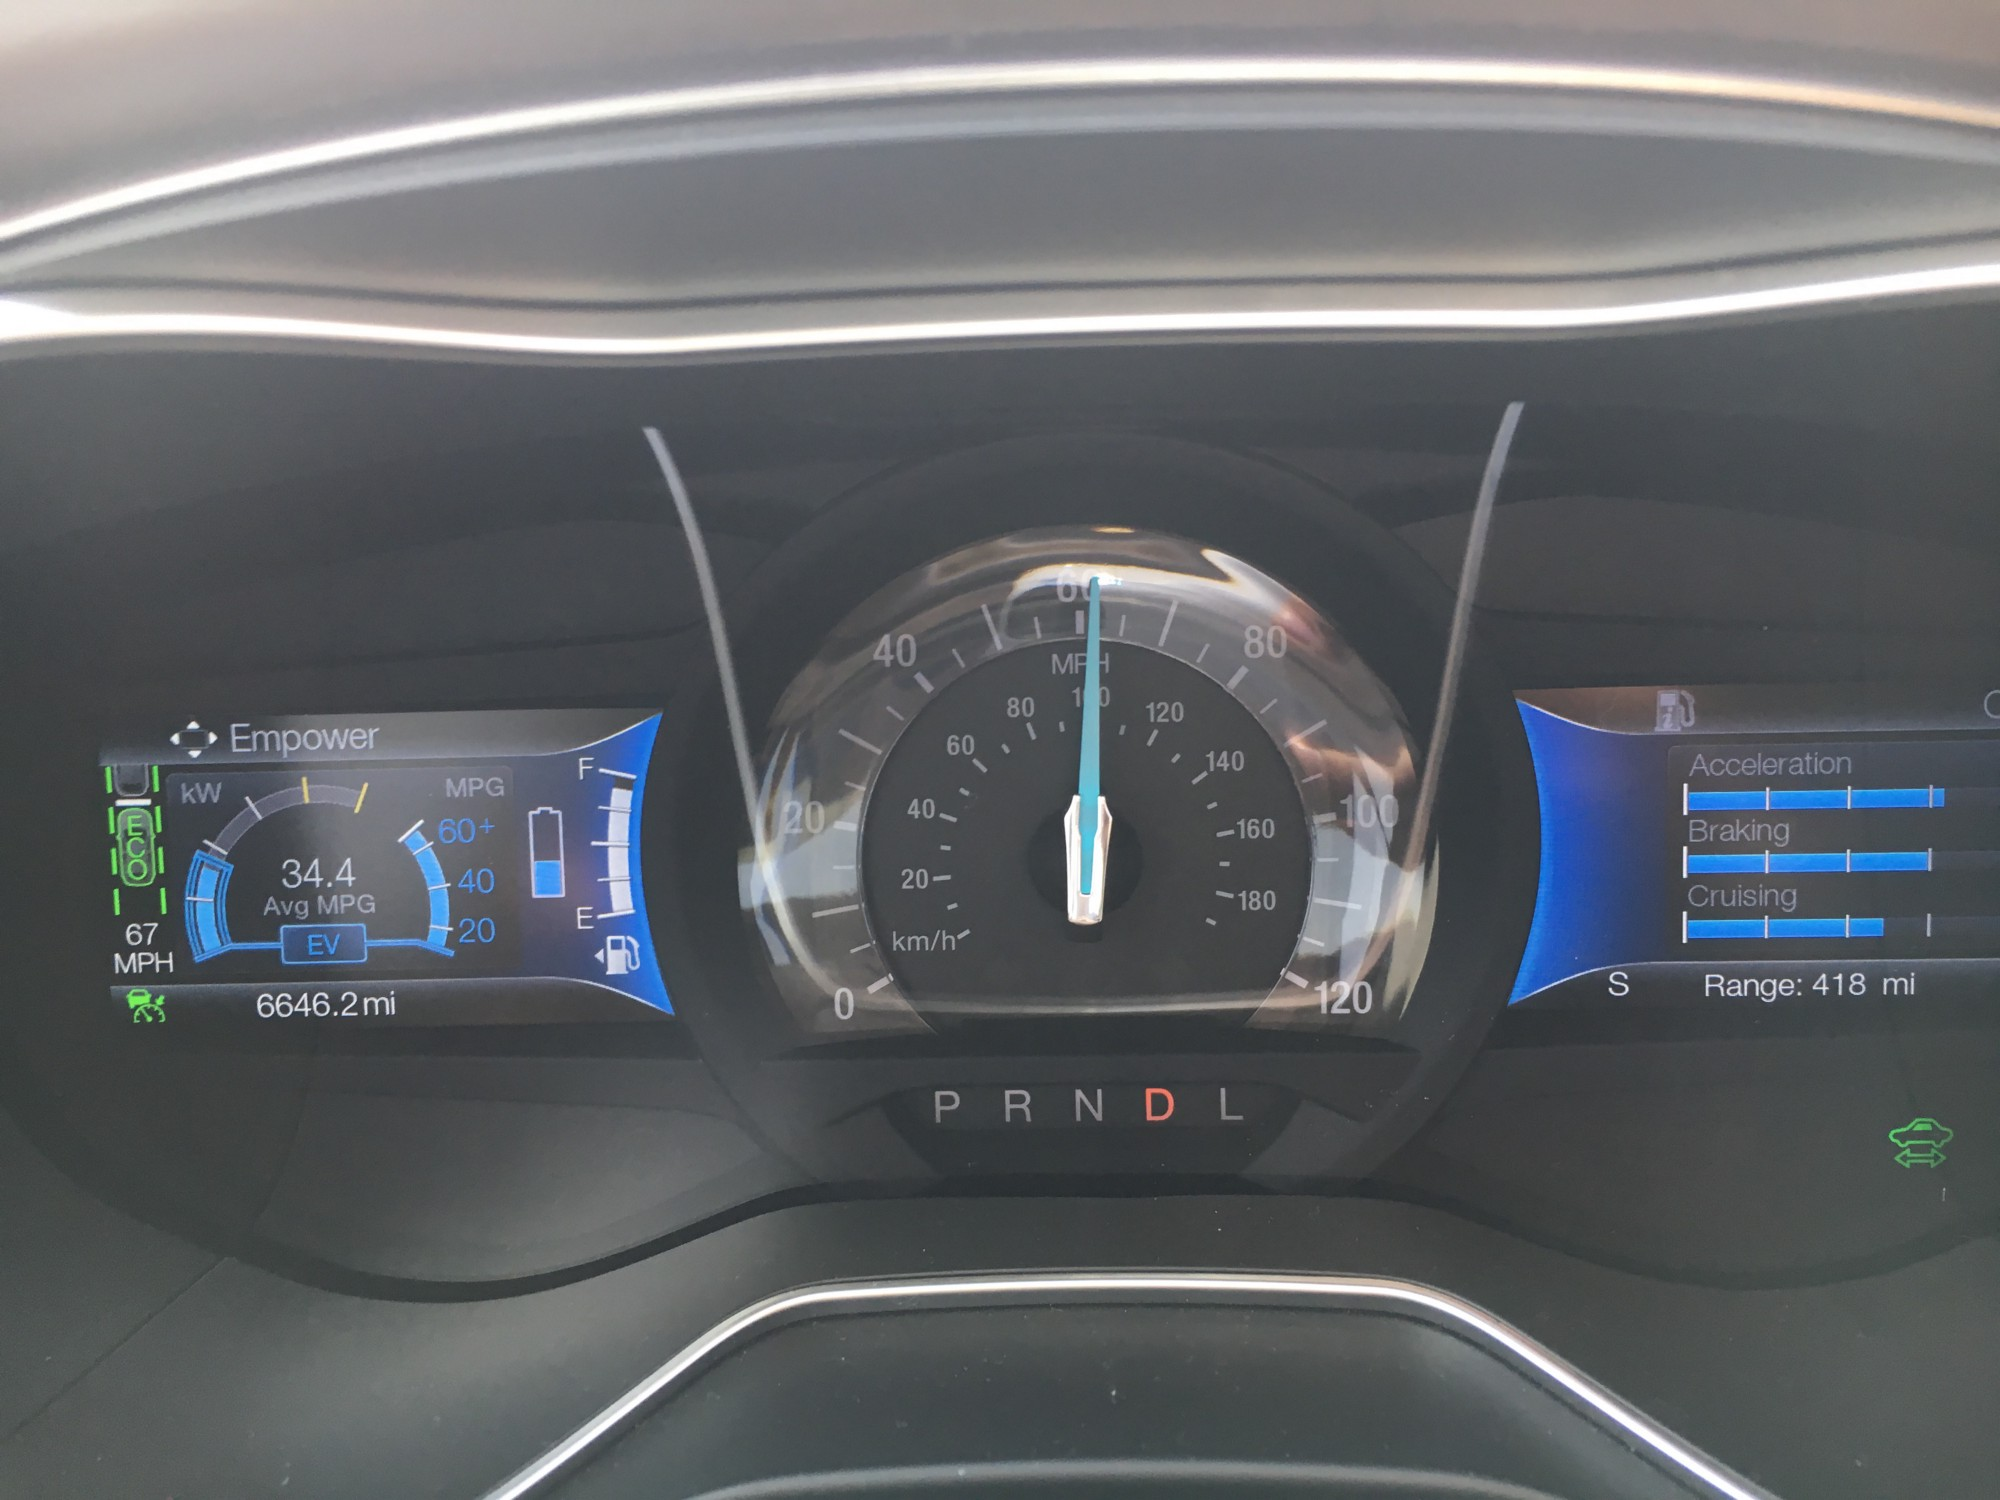 a 2017 ford fusion energi with adaptive cruise control here s an image of the dashboard while driving on the highway adaptive cruise control engaged